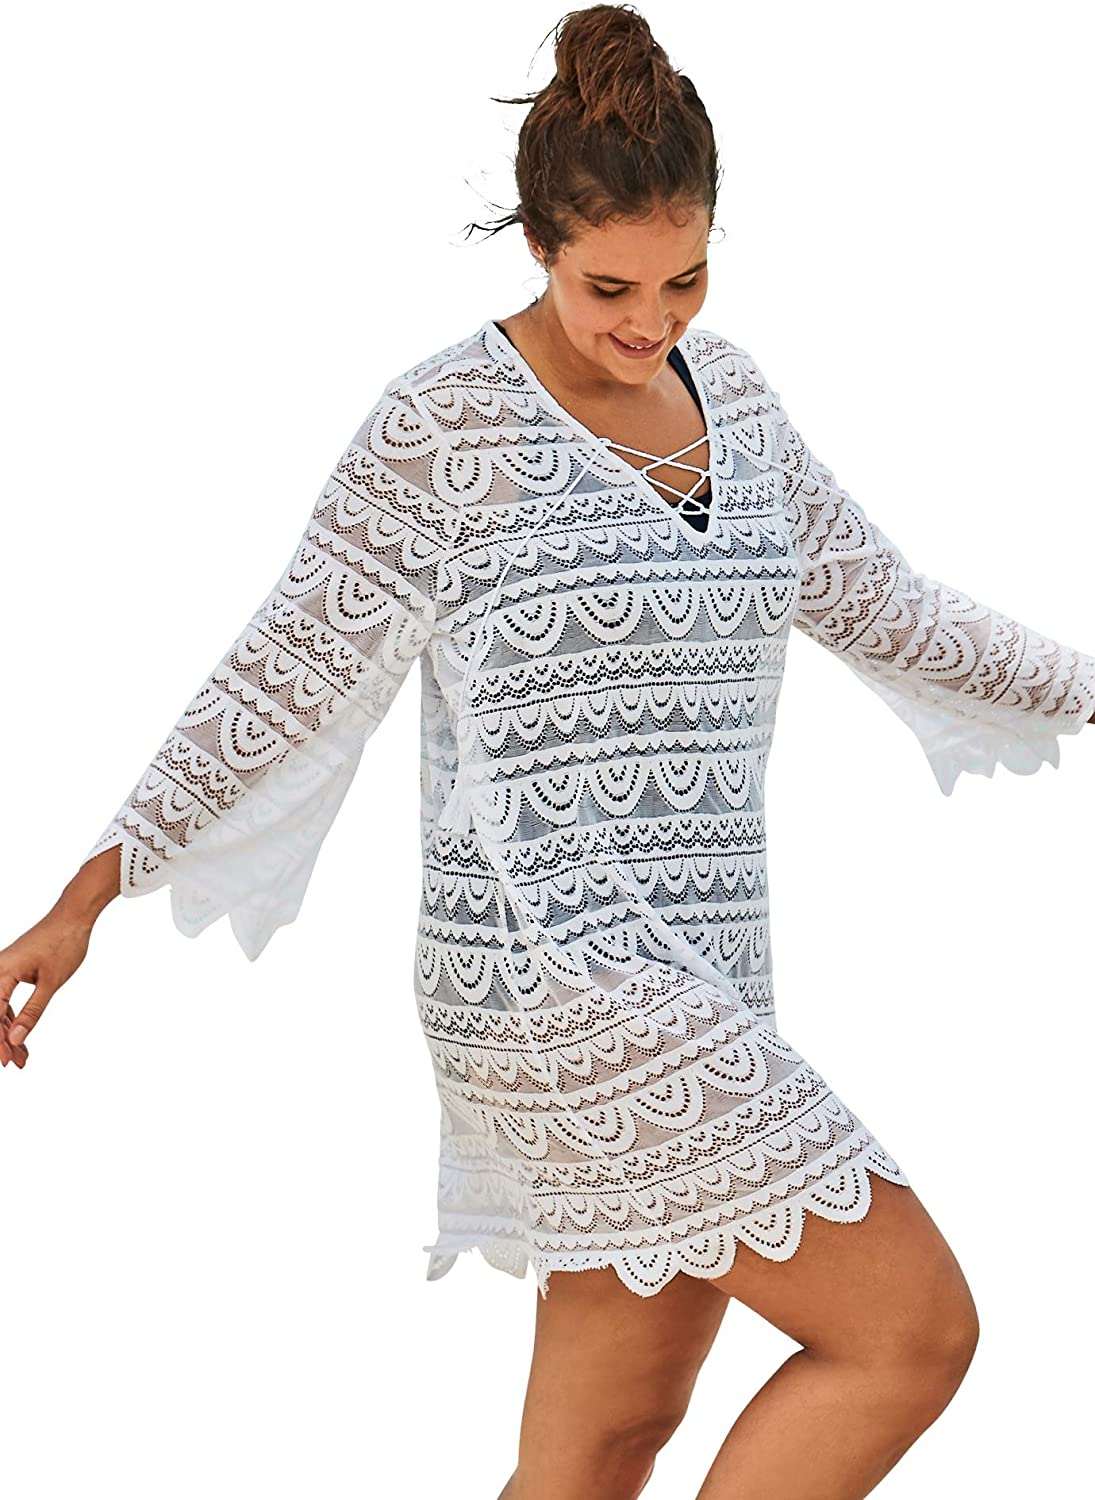 Swimsuits For All Women's Plus Size Scallop Lace Cover Up Swimsuit Cover Up